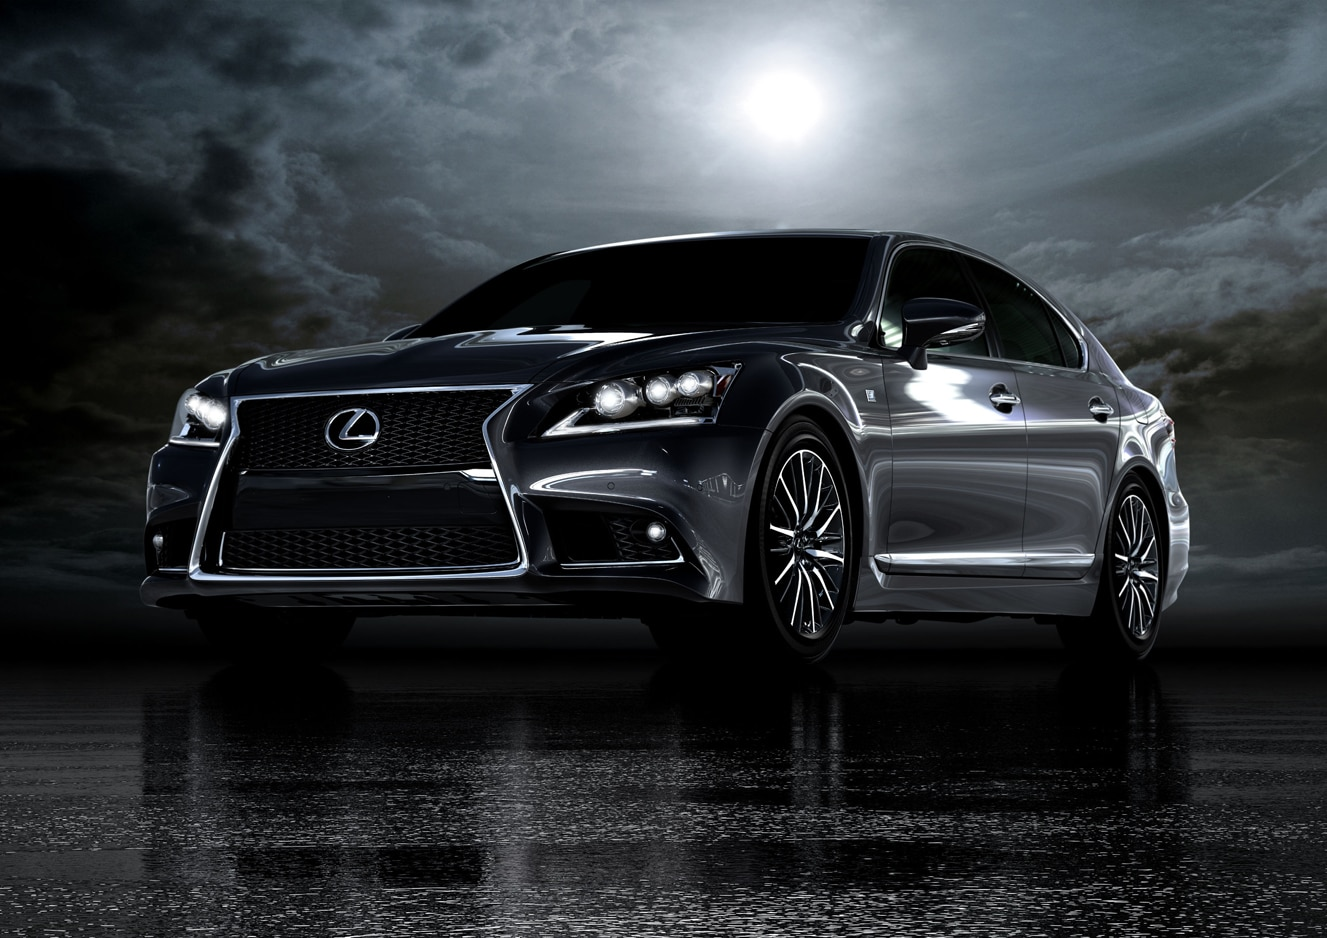 2013 Lexus LS 460 F Sport Front Three Quarter Dark